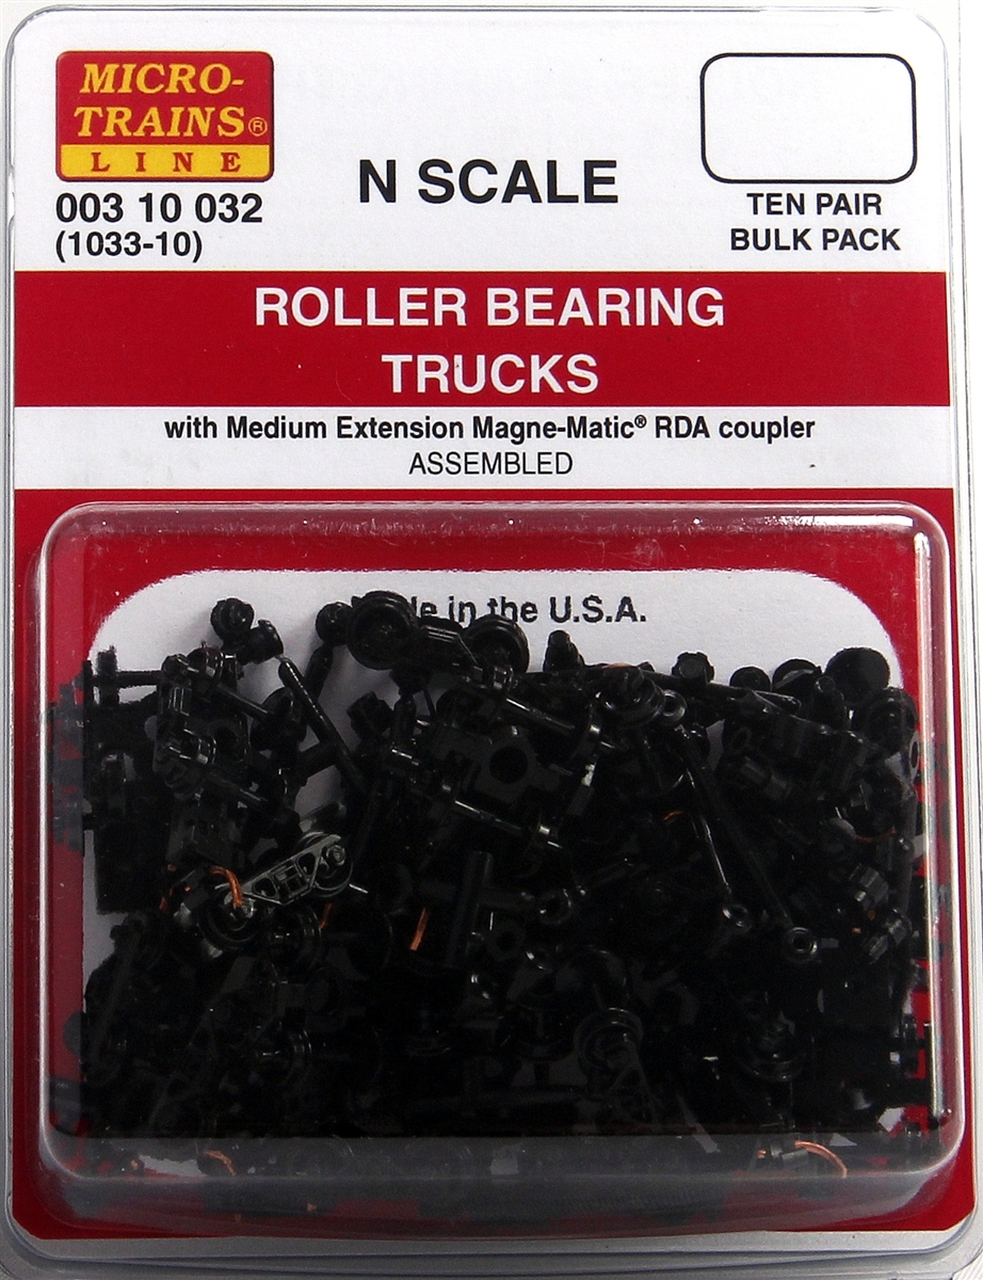 N Scale - Micro-Trains - 1033-10 - Bogies - Barber